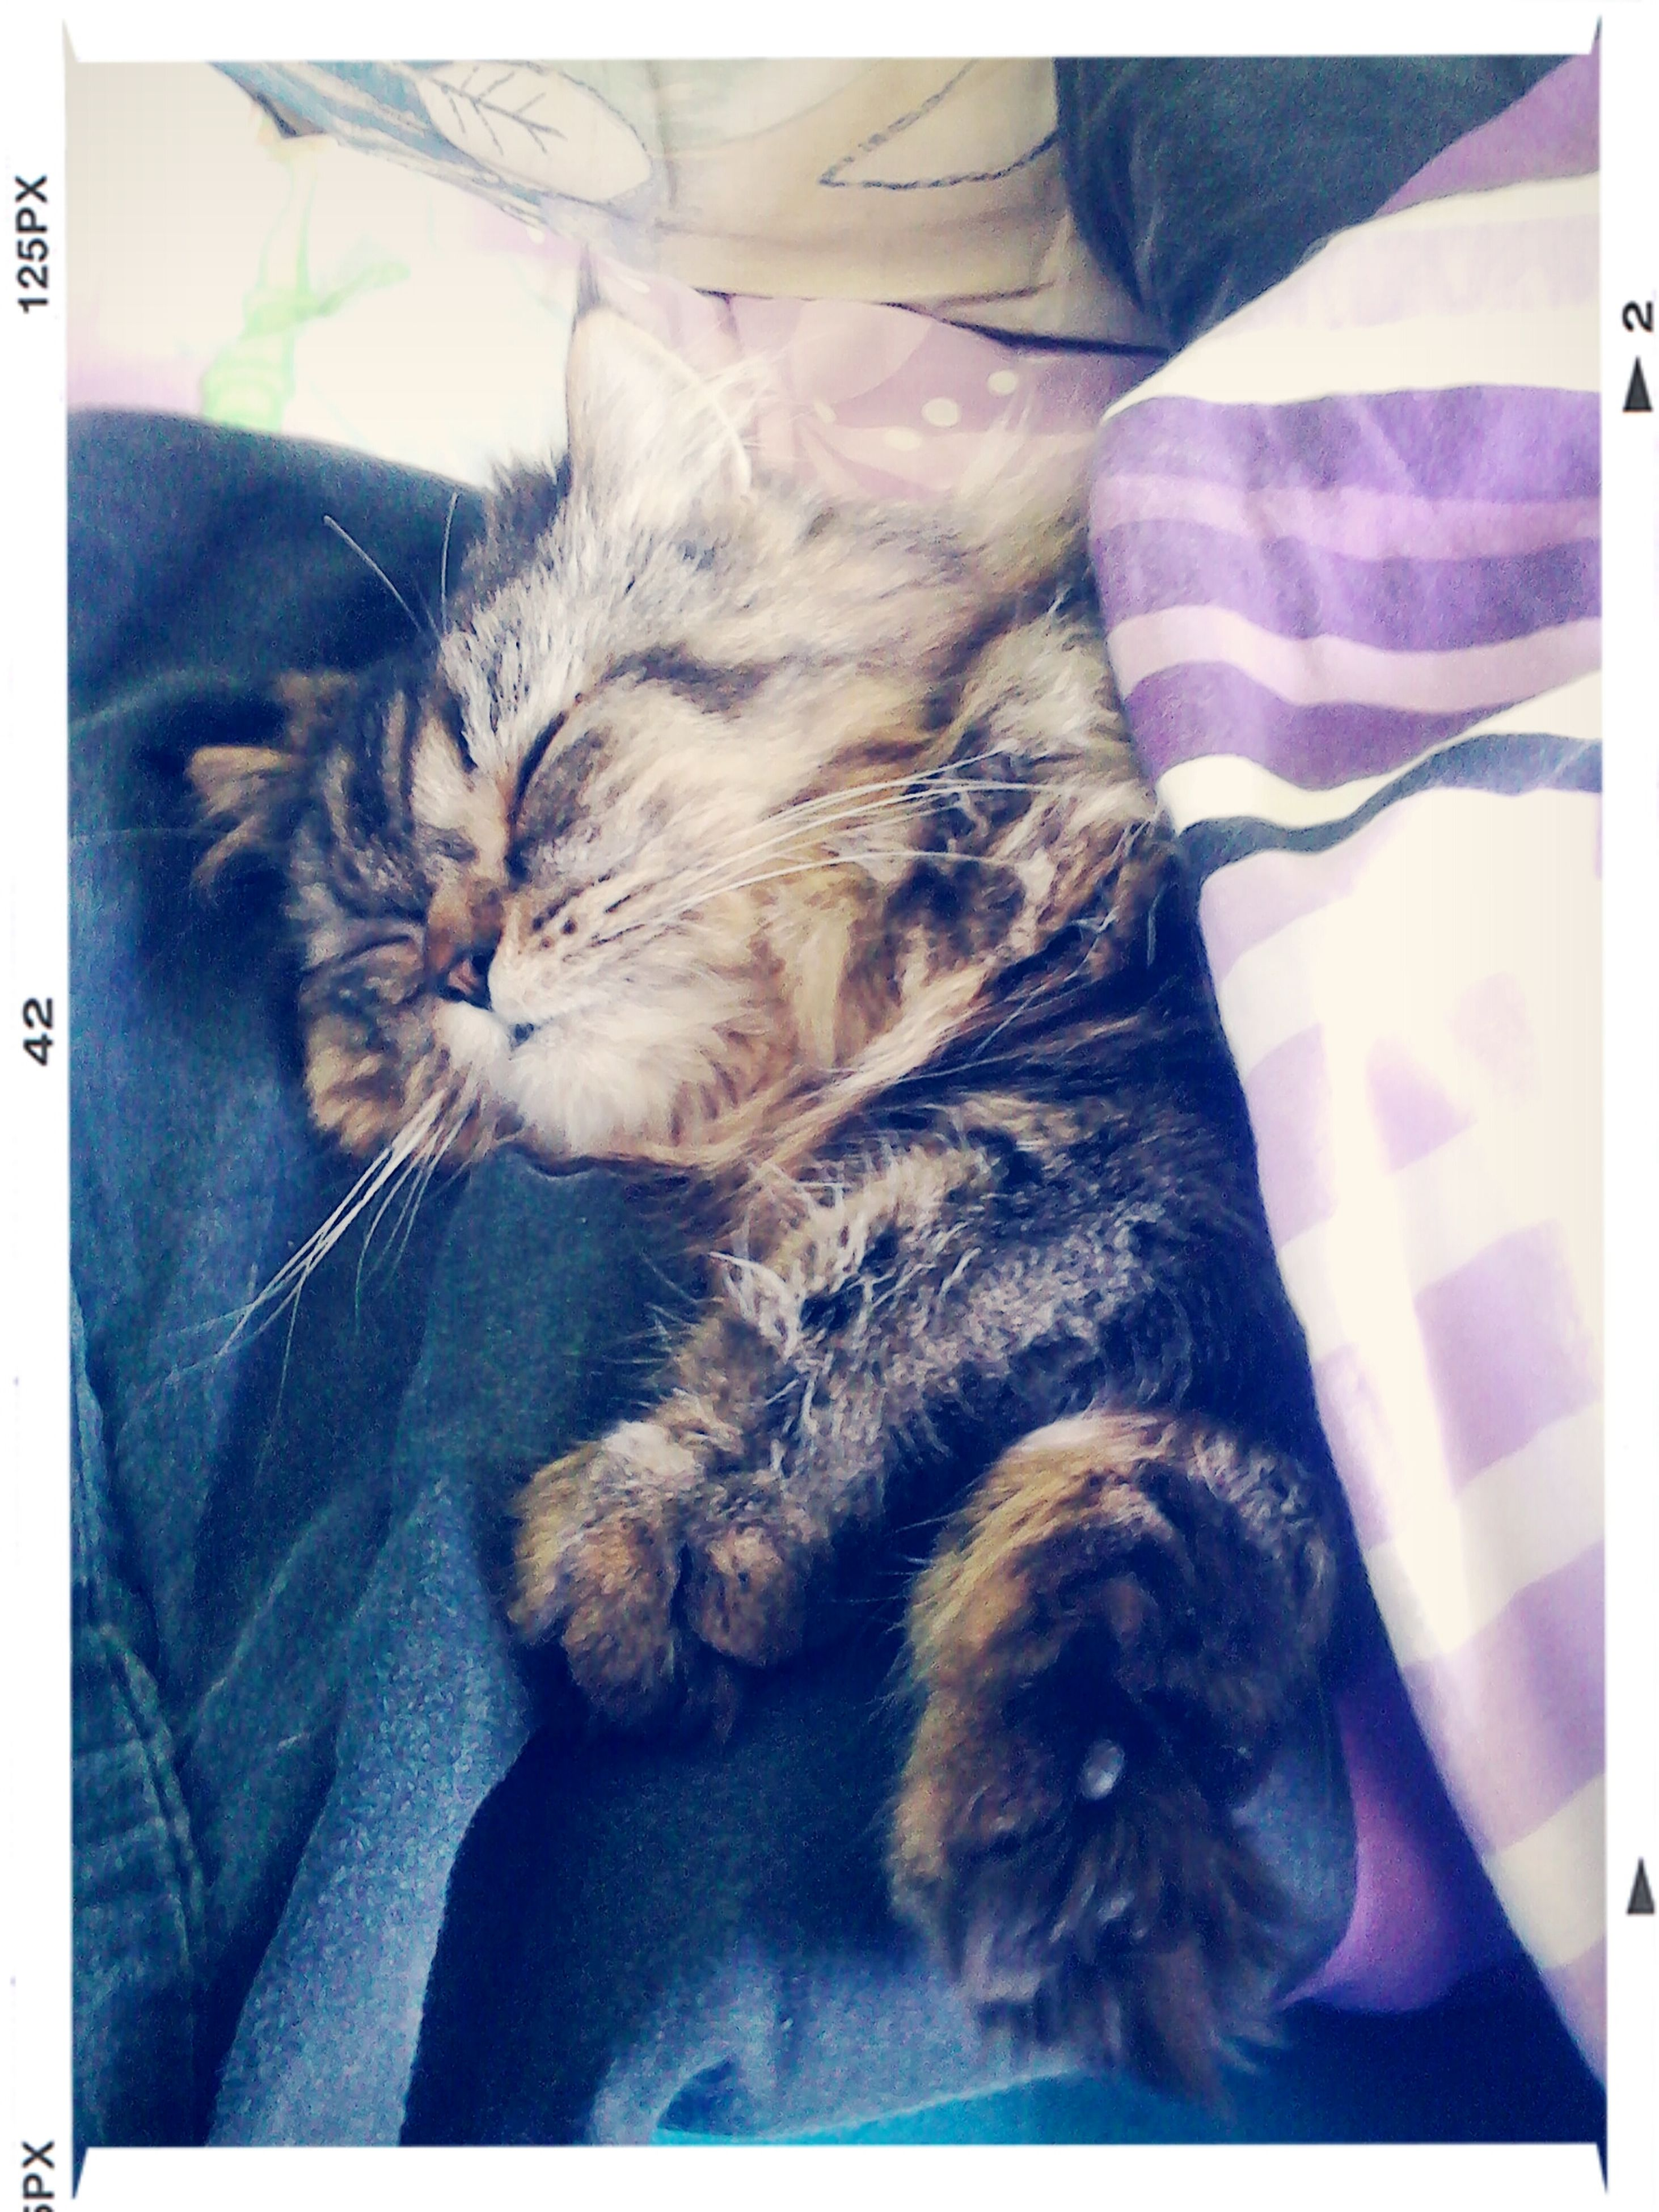 pets, domestic animals, mammal, domestic cat, animal themes, indoors, one animal, cat, relaxation, feline, transfer print, sleeping, resting, lying down, bed, auto post production filter, eyes closed, whisker, home interior, high angle view